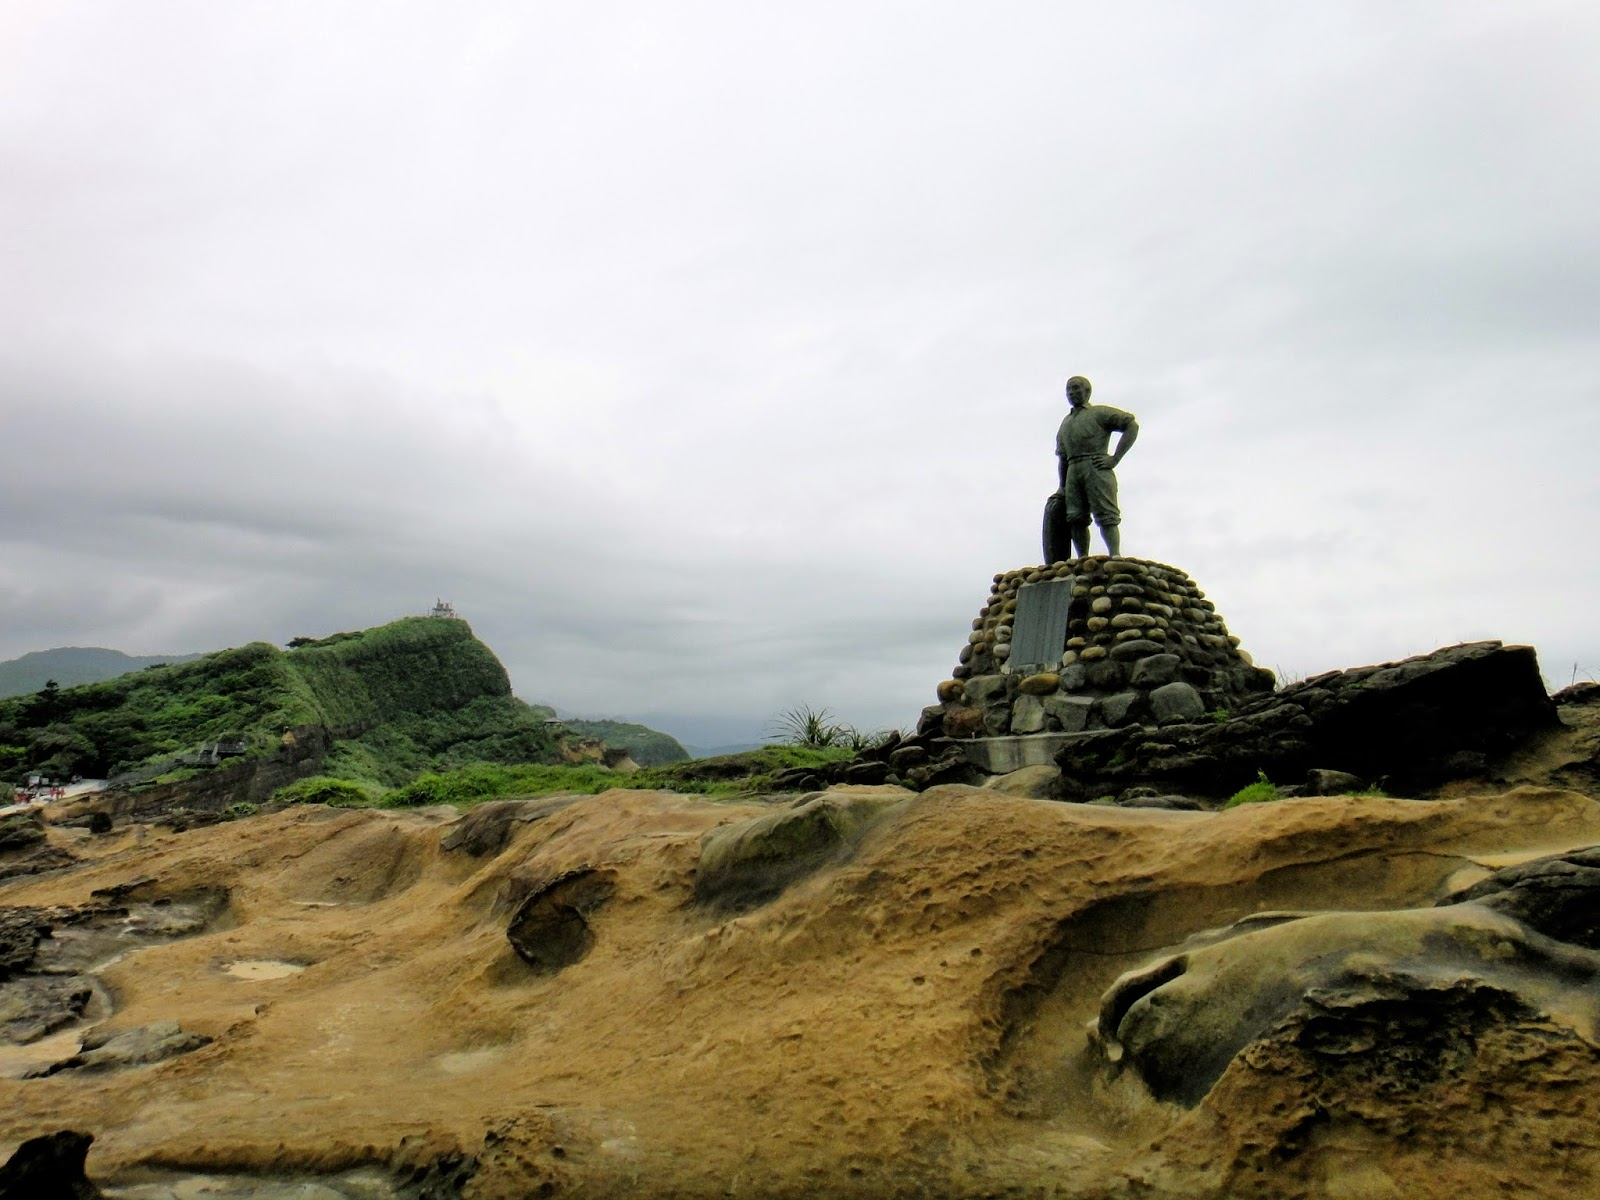 The statue of drowned boy Yehliu Geopark Taiwan